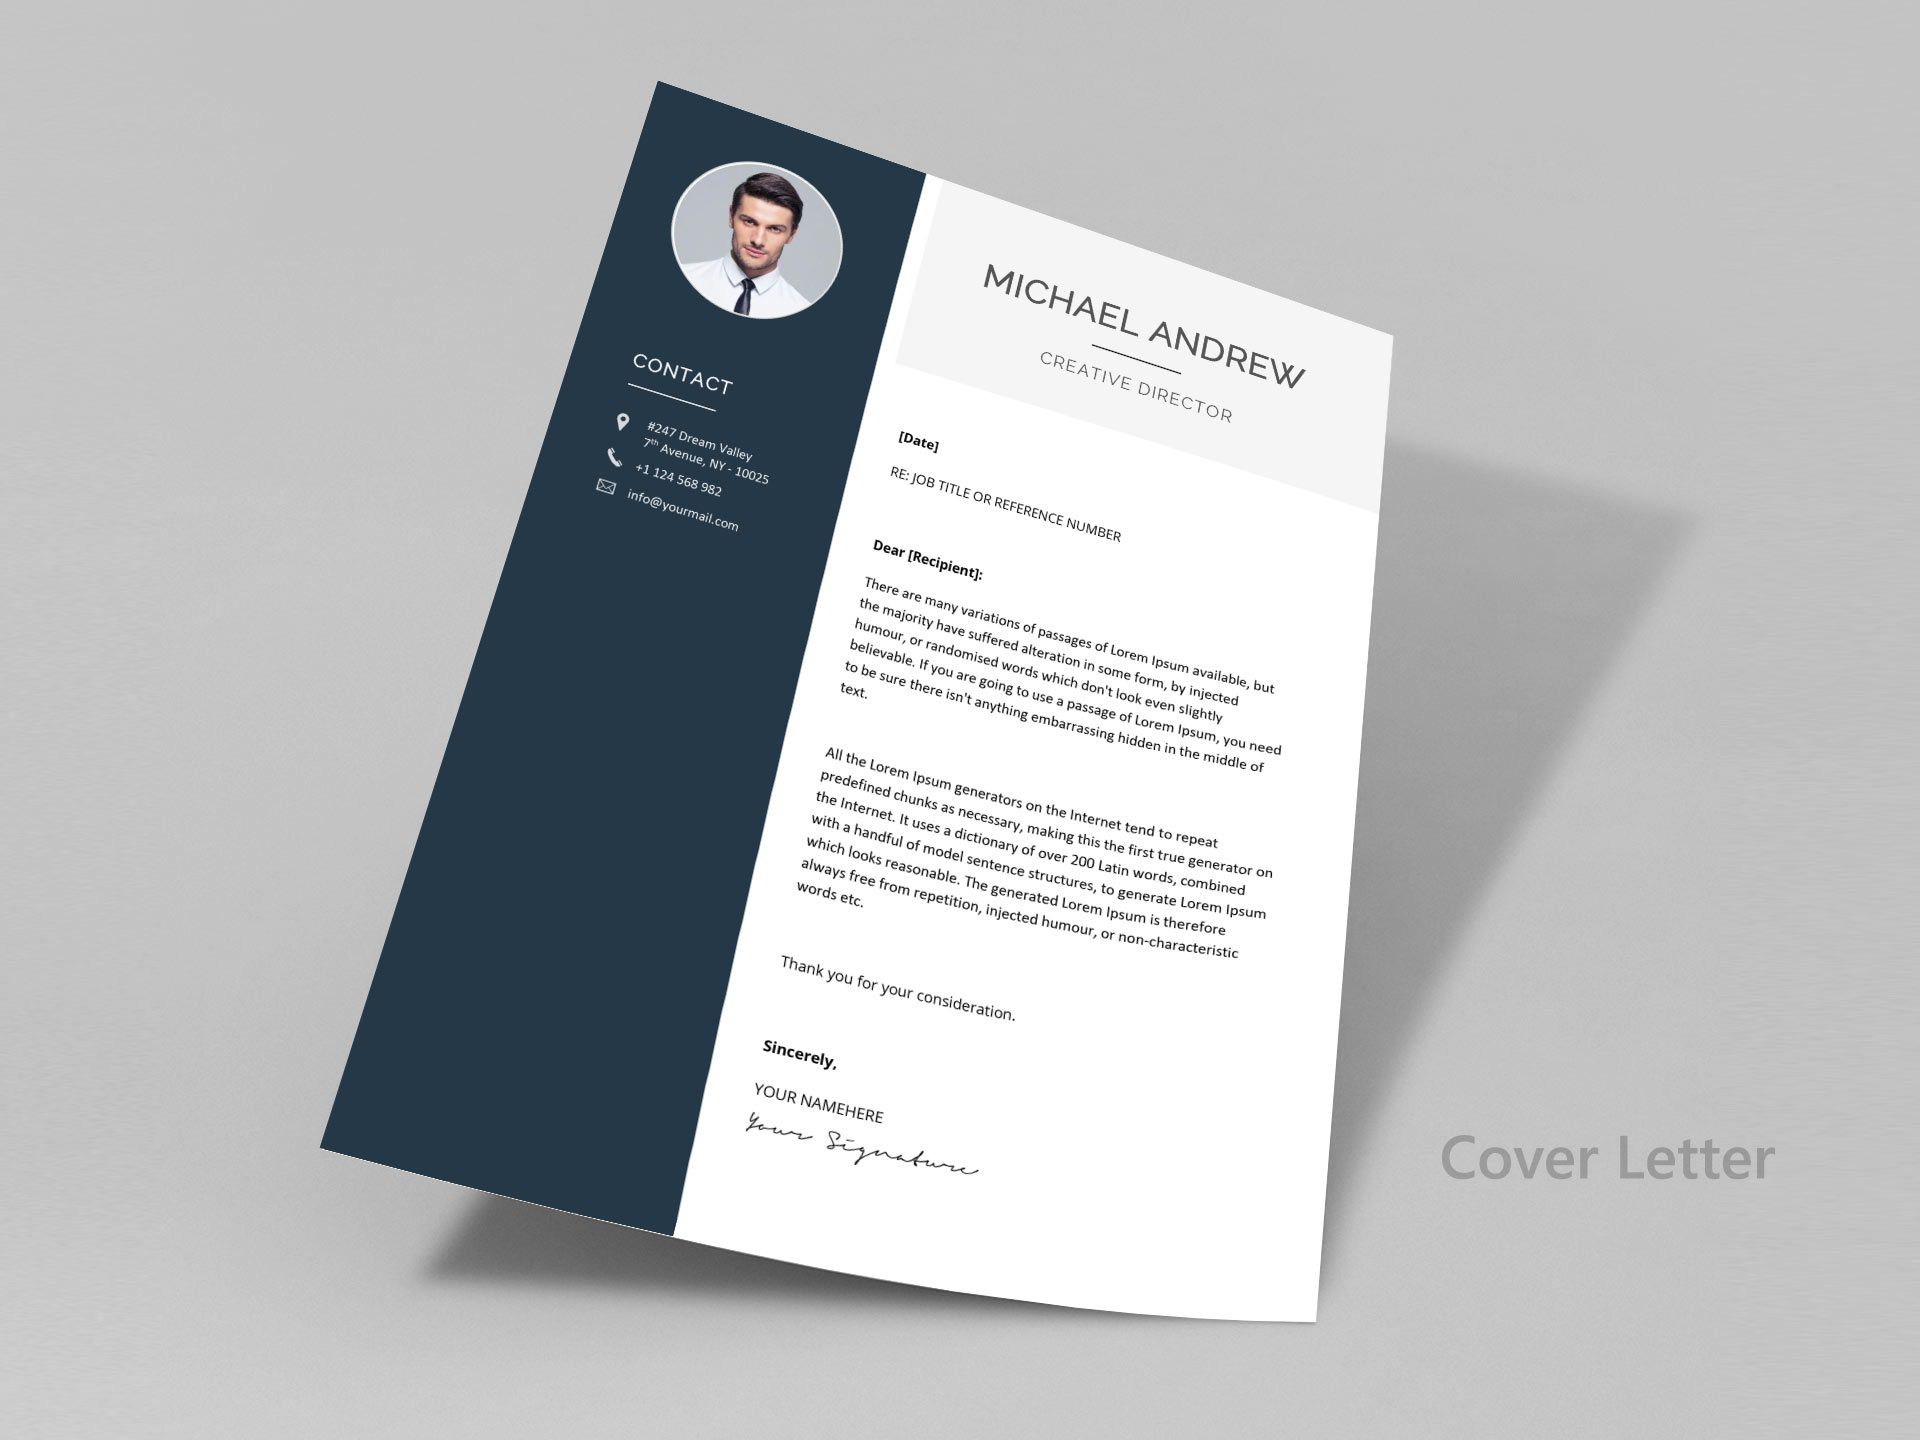 009 Astounding Professional Cv Template 2019 Free Download Highest Quality Full